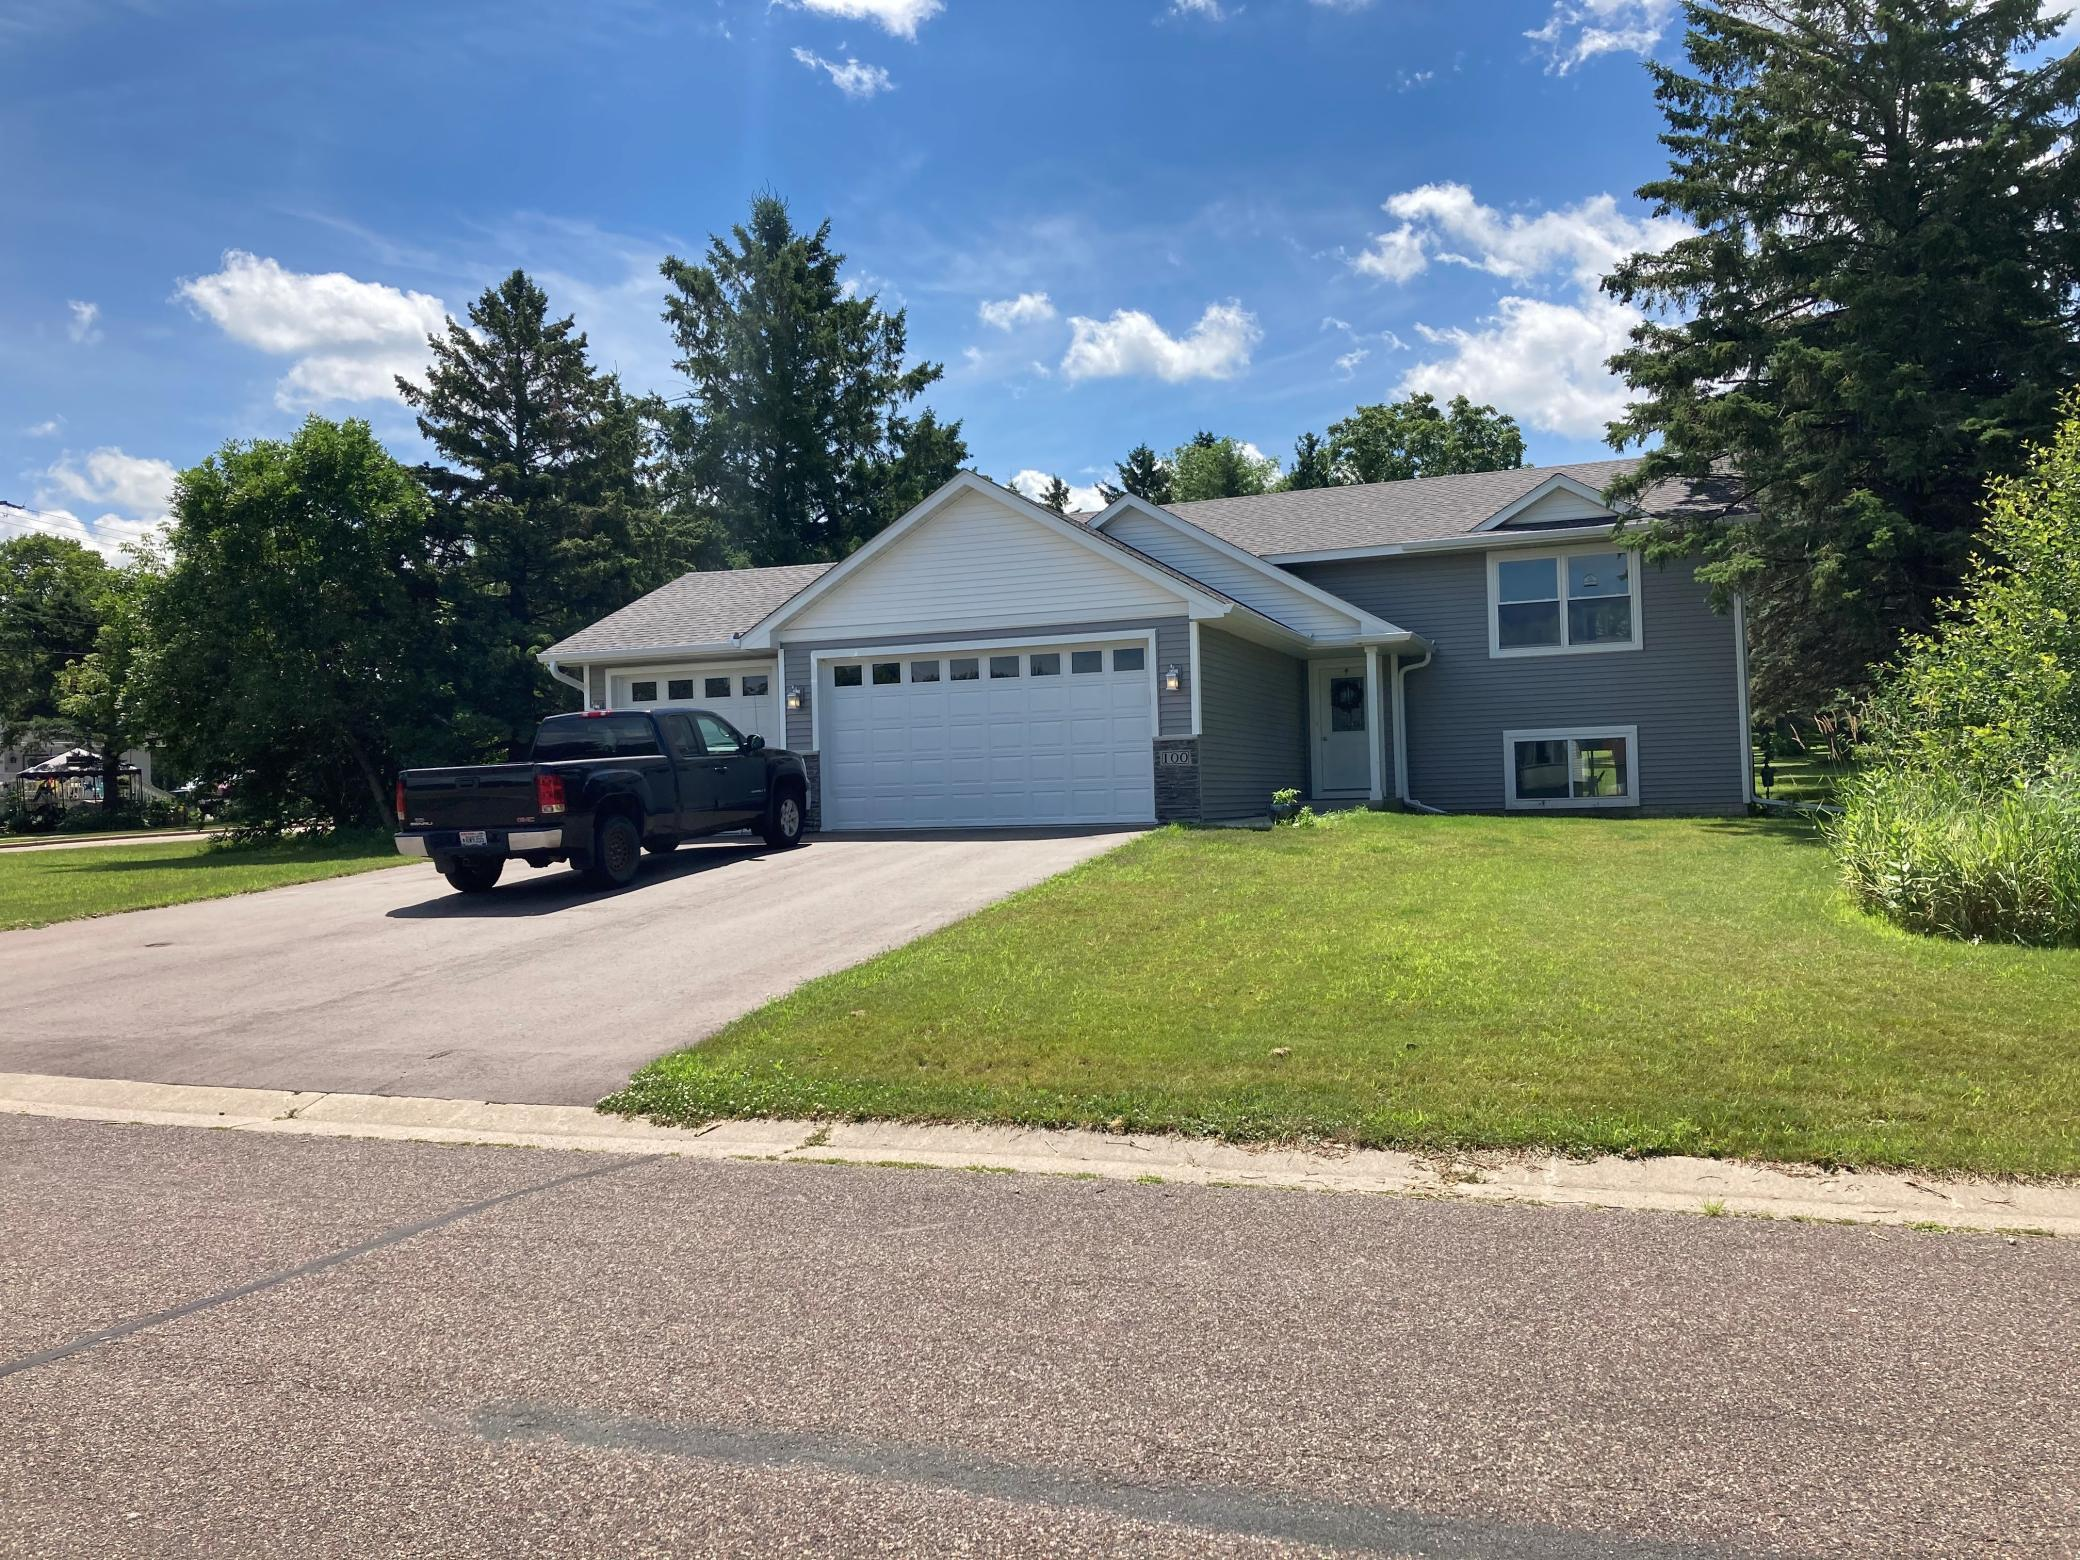 709 Lacie D Property Photo - Roberts, WI real estate listing